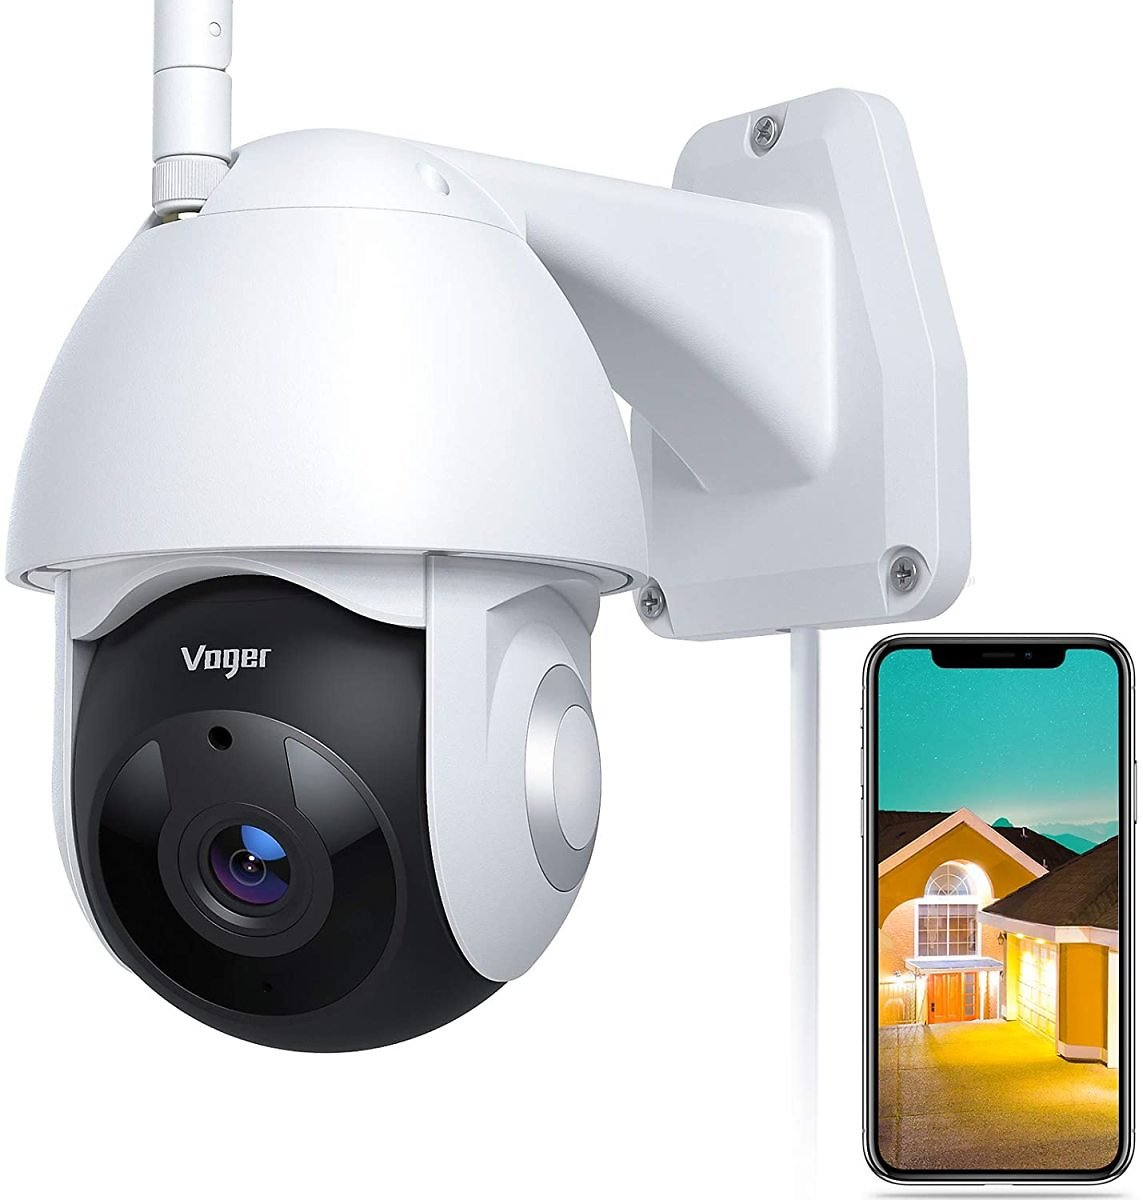 Voger 360° View WiFi Home Security Camera System